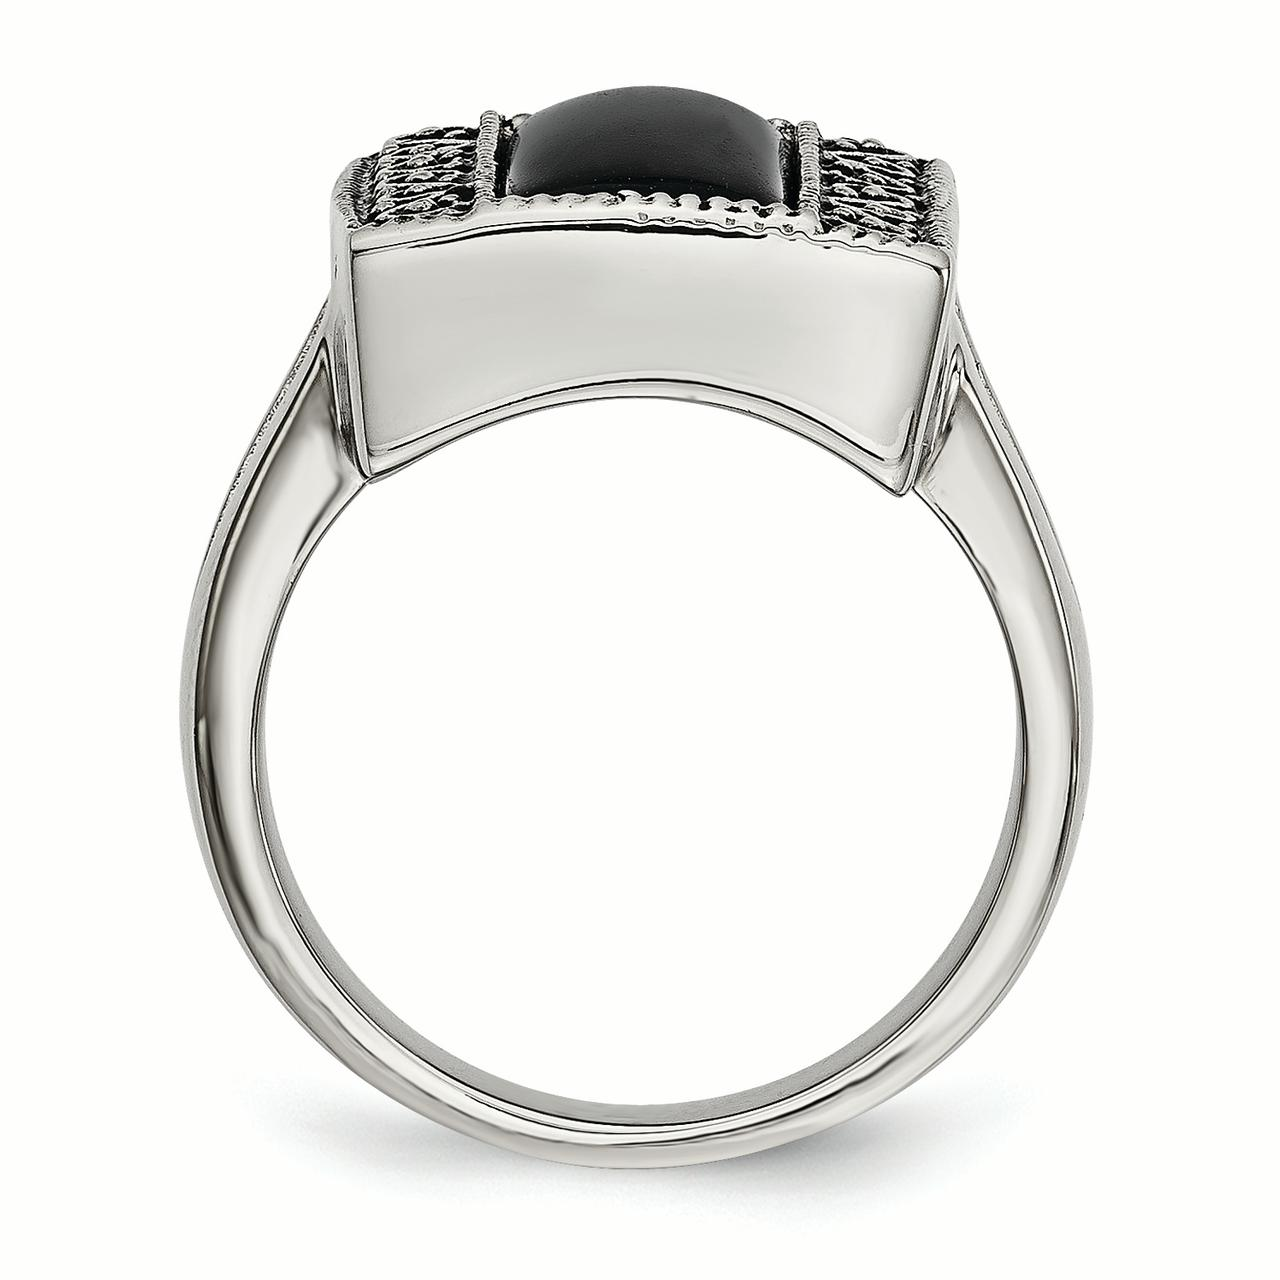 Stainless Steel Fashion Ring Polished Antiqued 17 mm Black Onyx Antiqued Rectangular Ring